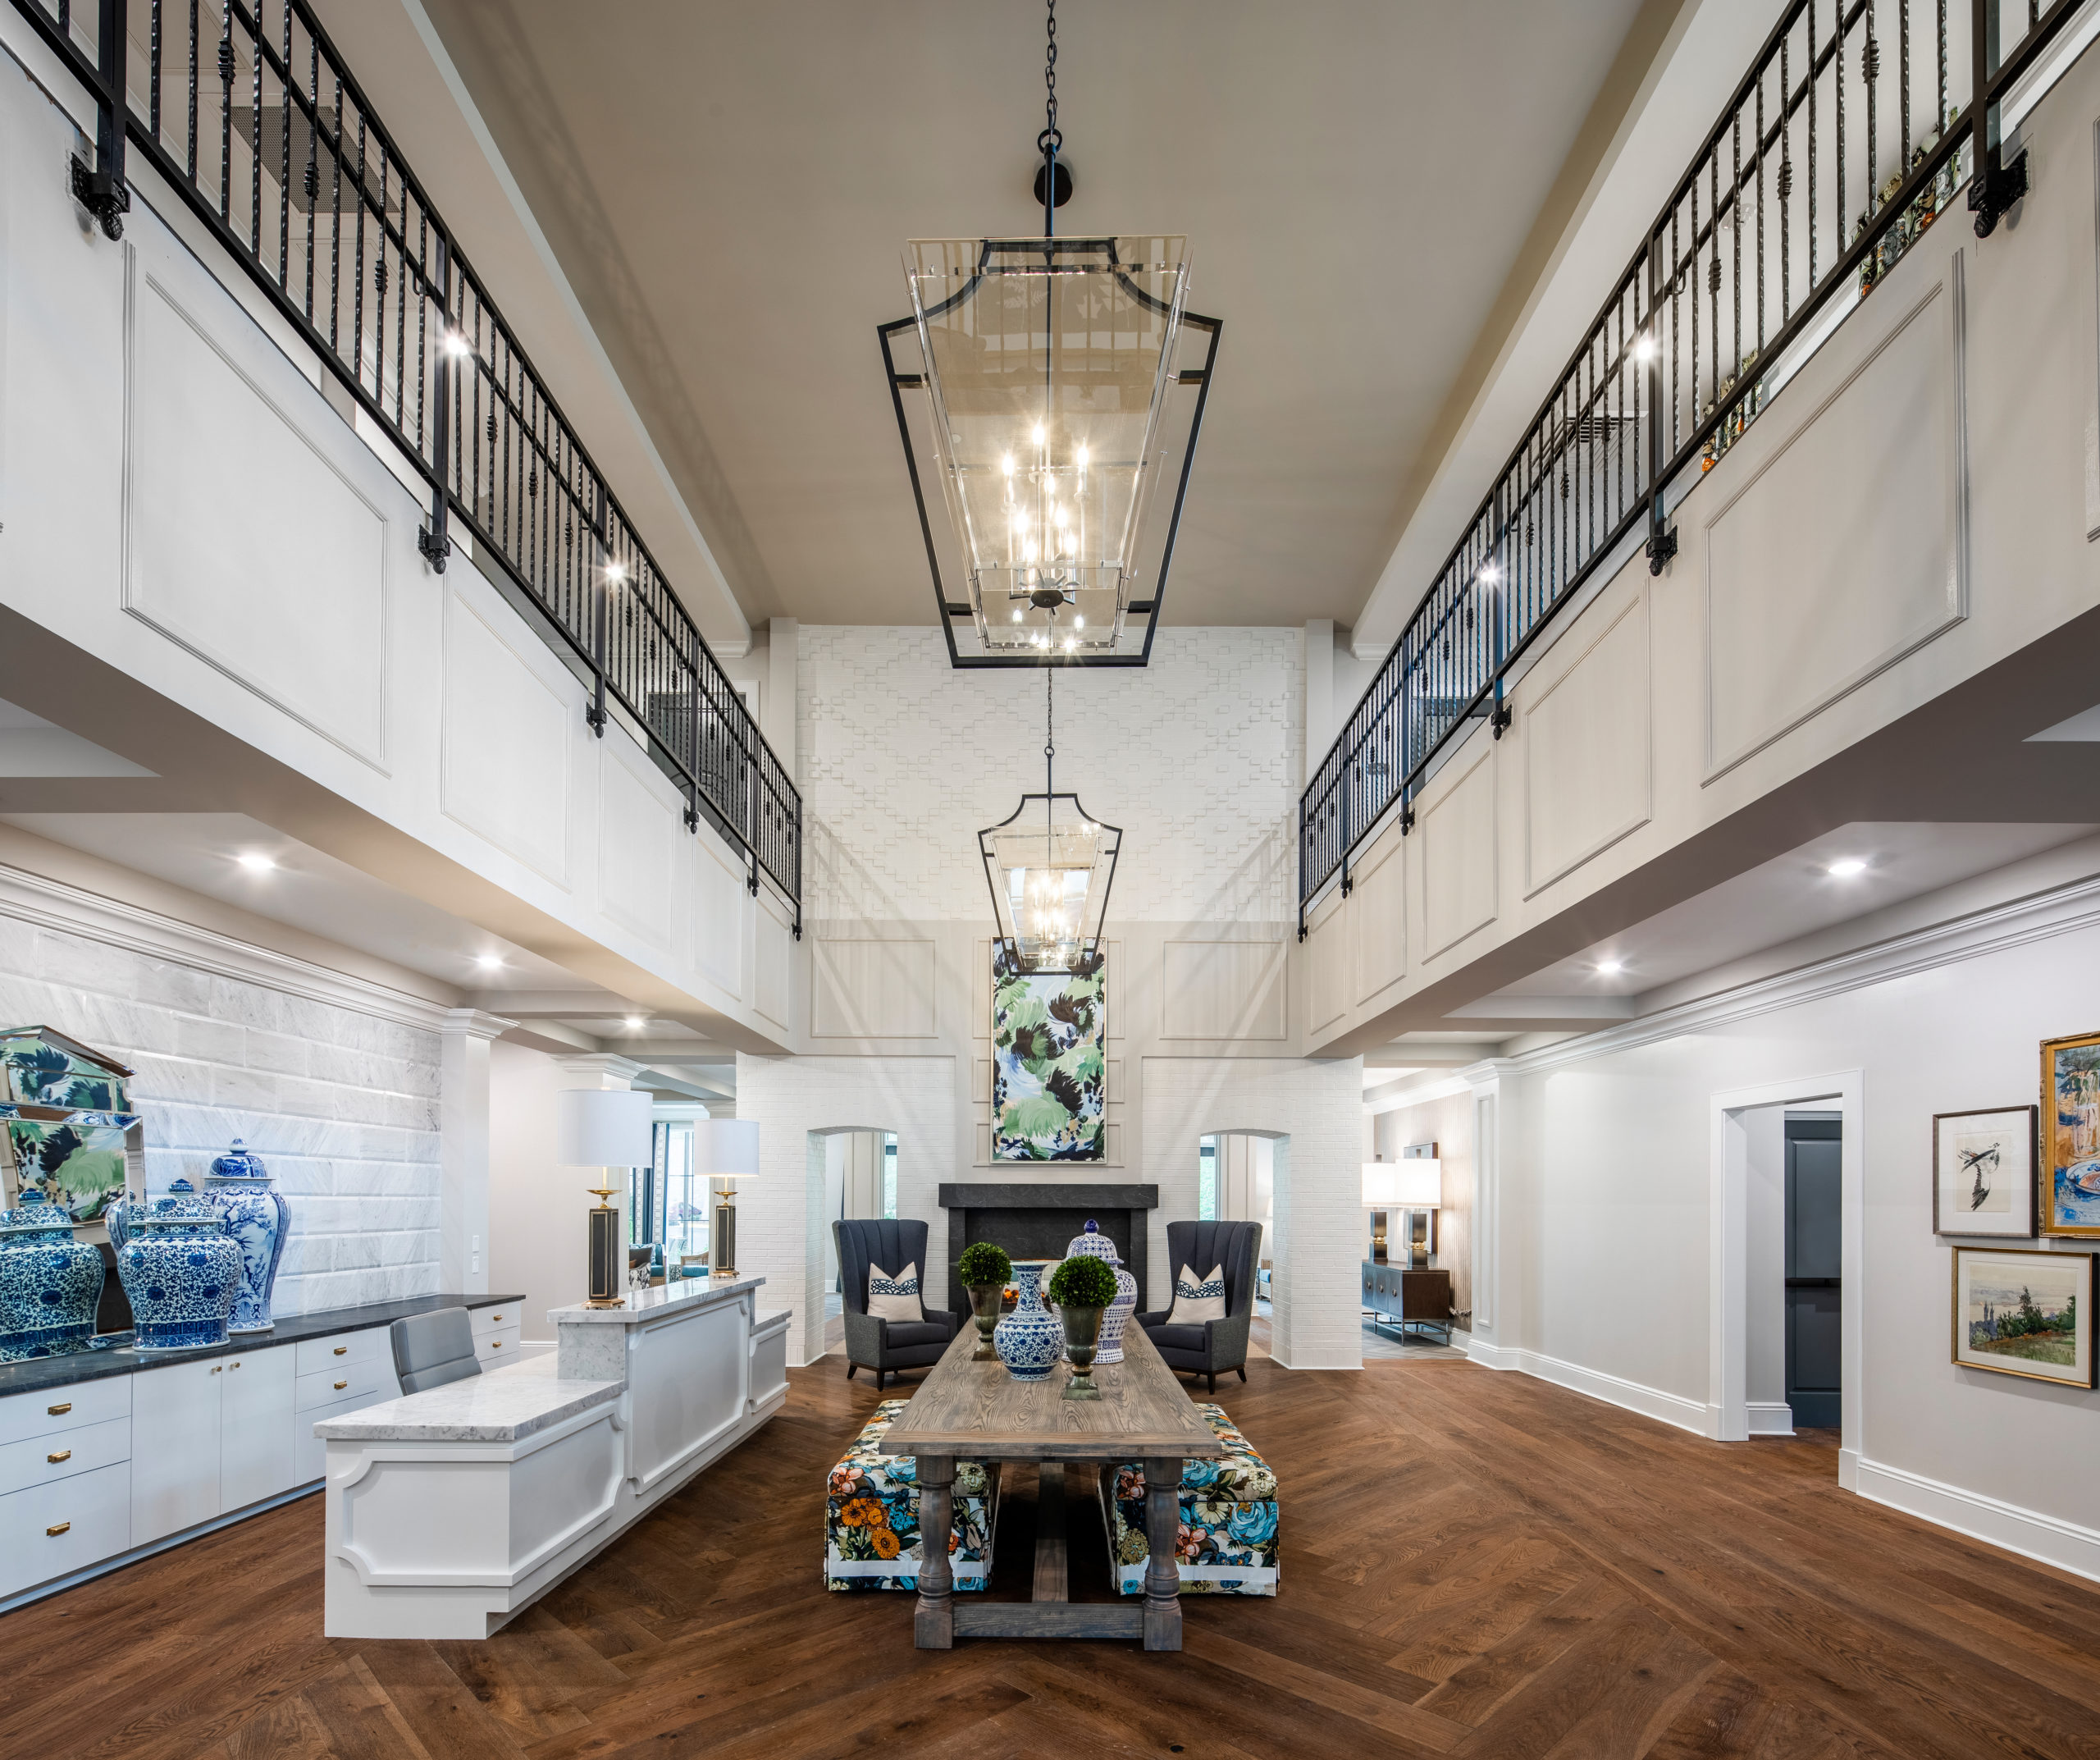 Longleaf foyer with white front desk at left, long wood table in center holding blue/white vases, greenery in pots and floral benches underneath, and open to second floor above with black metal railing, glass light fixtures, see-through fireplace at back of room with chairs